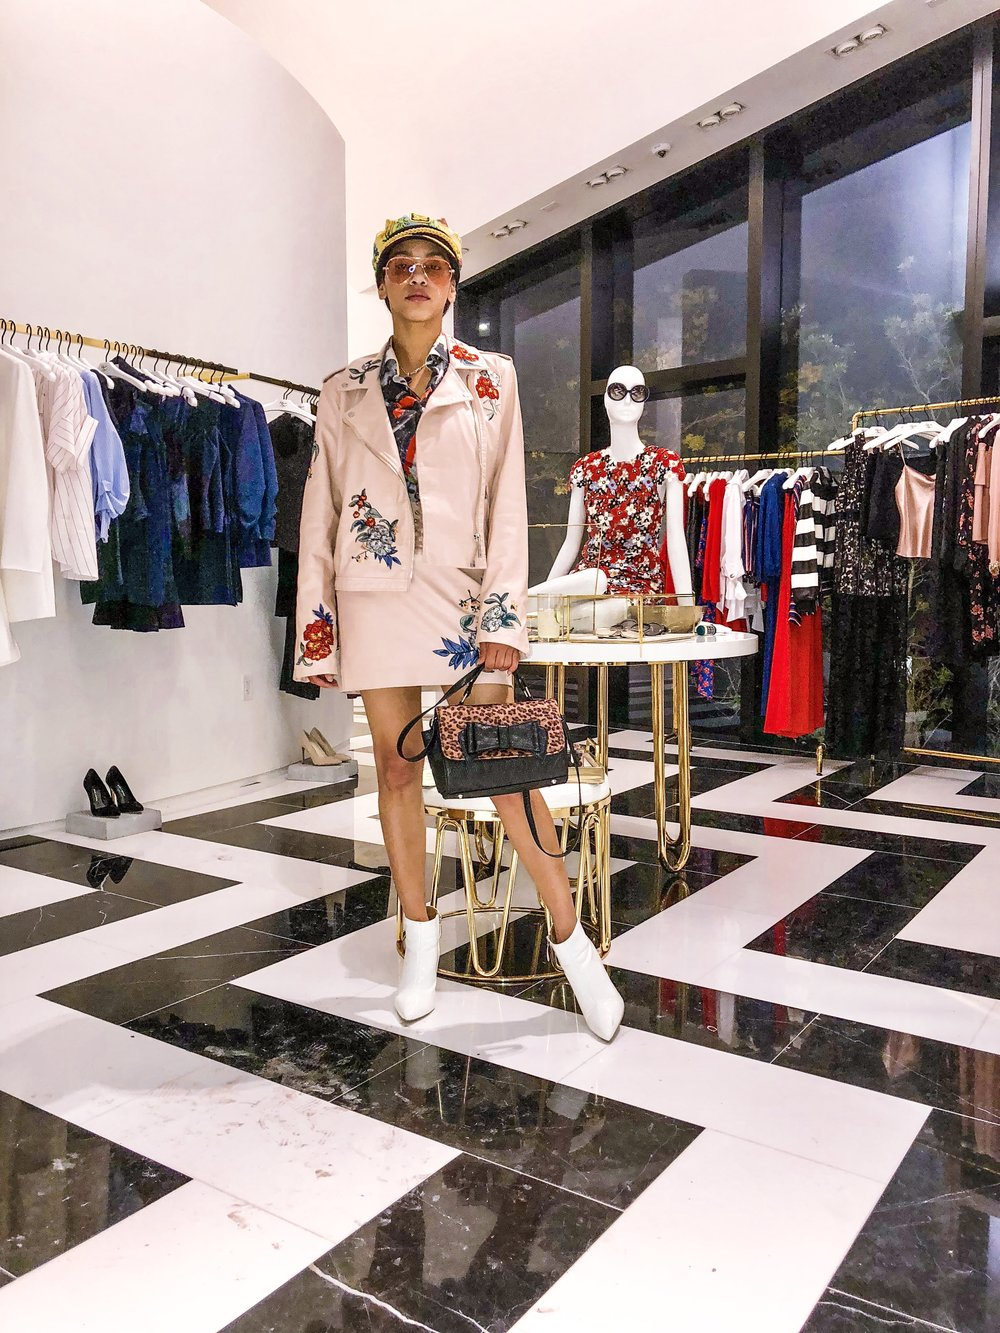 pink-outfit-style-alice-and-olivia miami design district event-lifestyle-fashion-blog-house-of-she-fashion-stylist-illy-perez